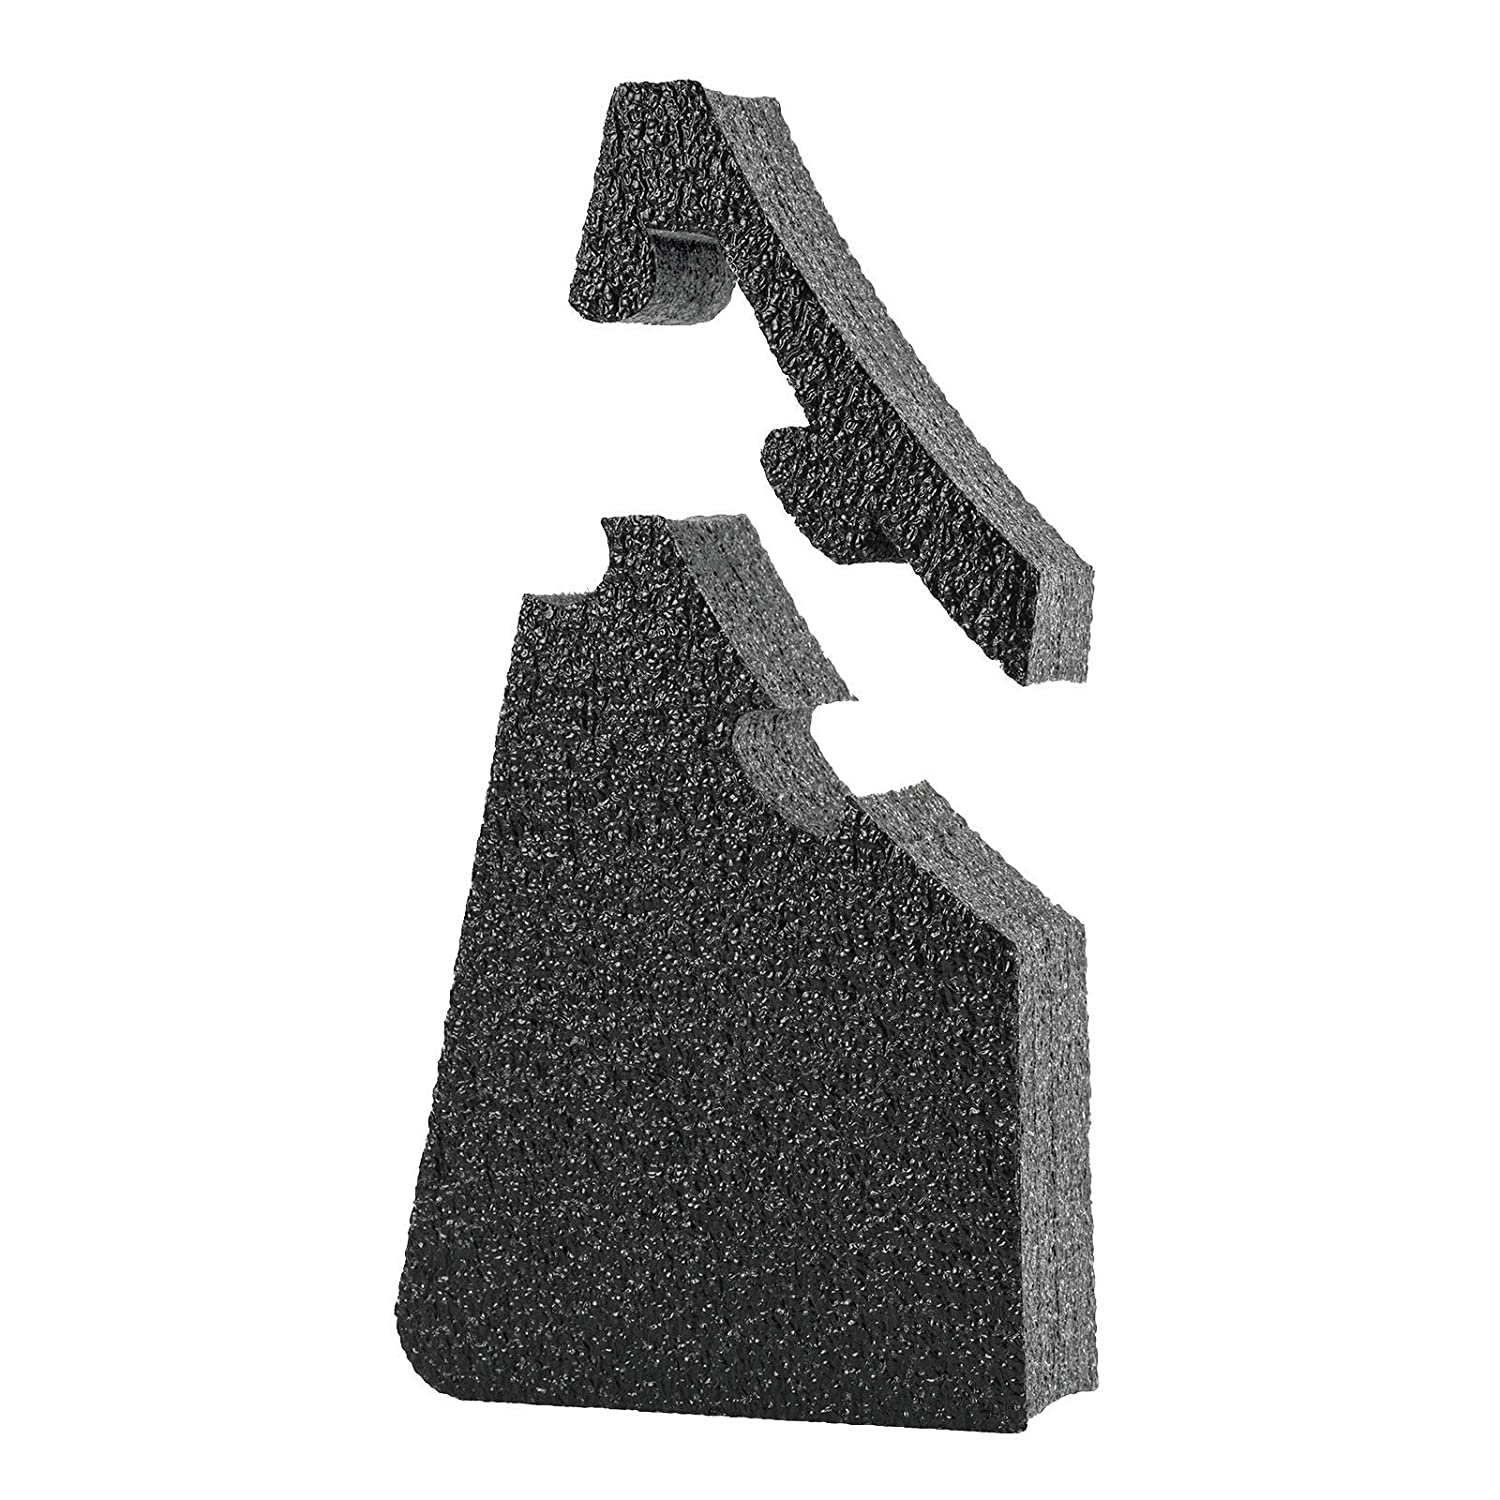 Odyson - Two-in-One Service Wedge Repair Tool Replacement for iMac 21.5' & 27' (Late 2009 - Mid 2017) 2130-N01